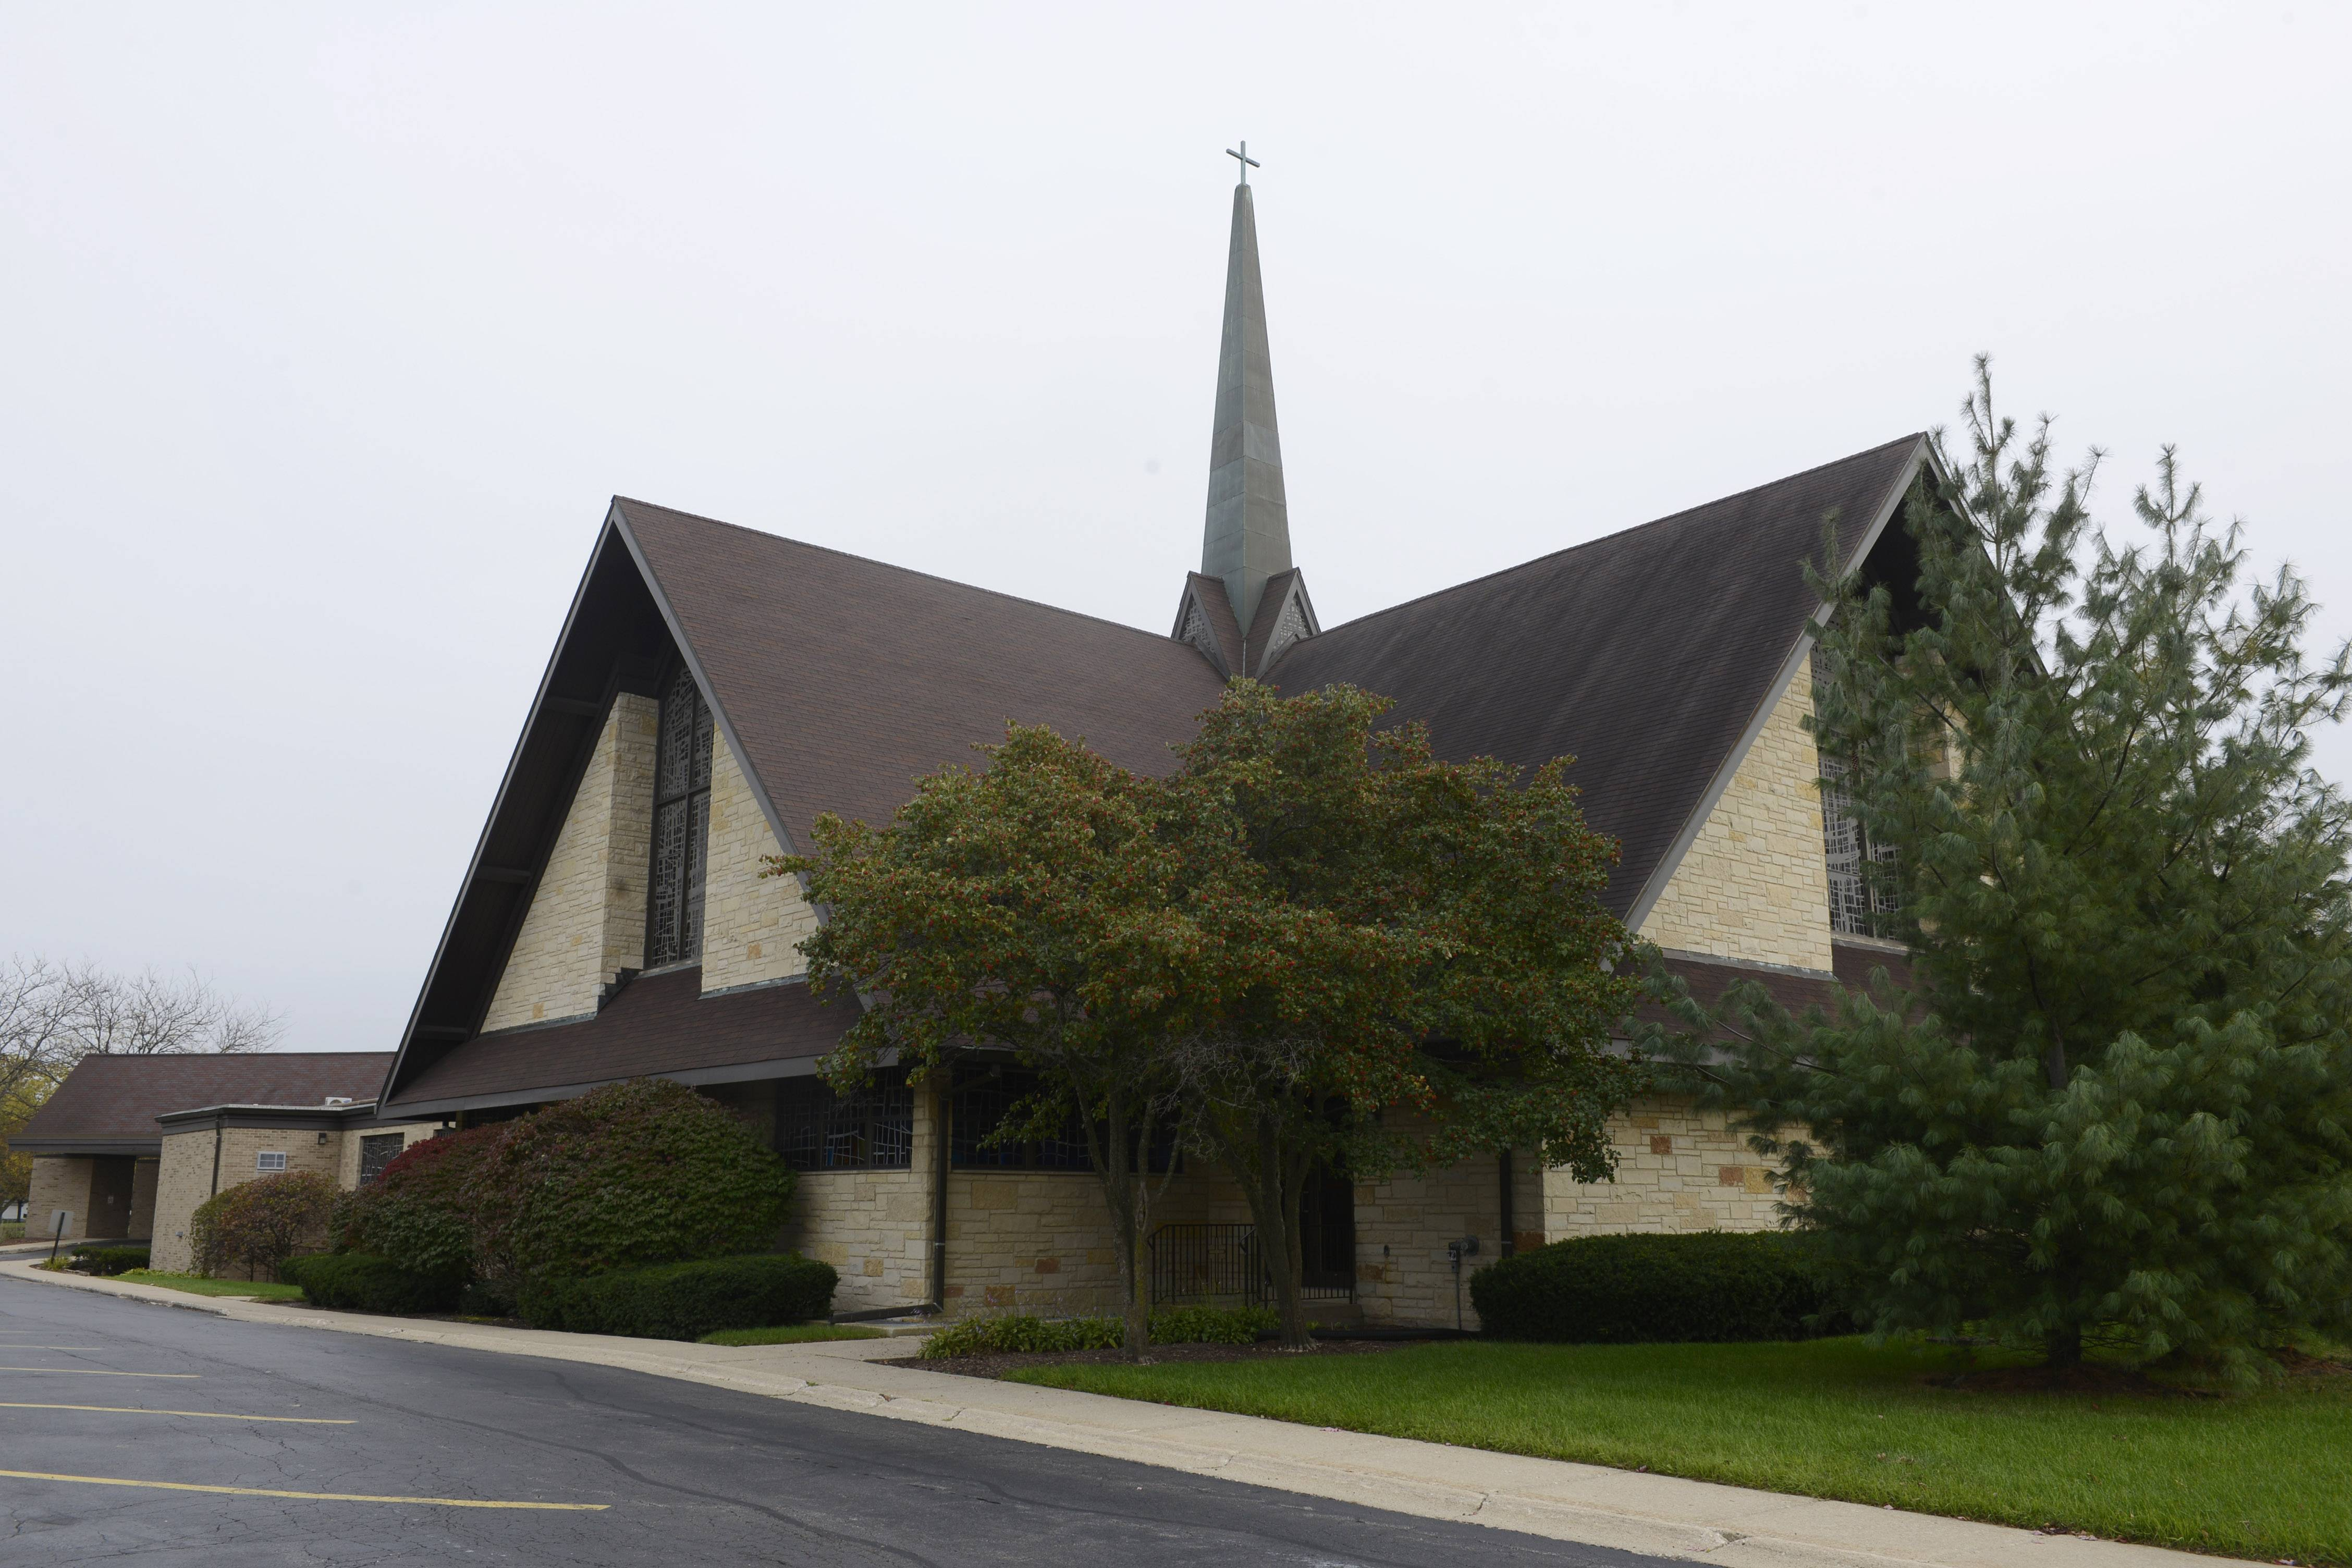 Arlington Hts. church backs off parking expansion, will sell 8 homes